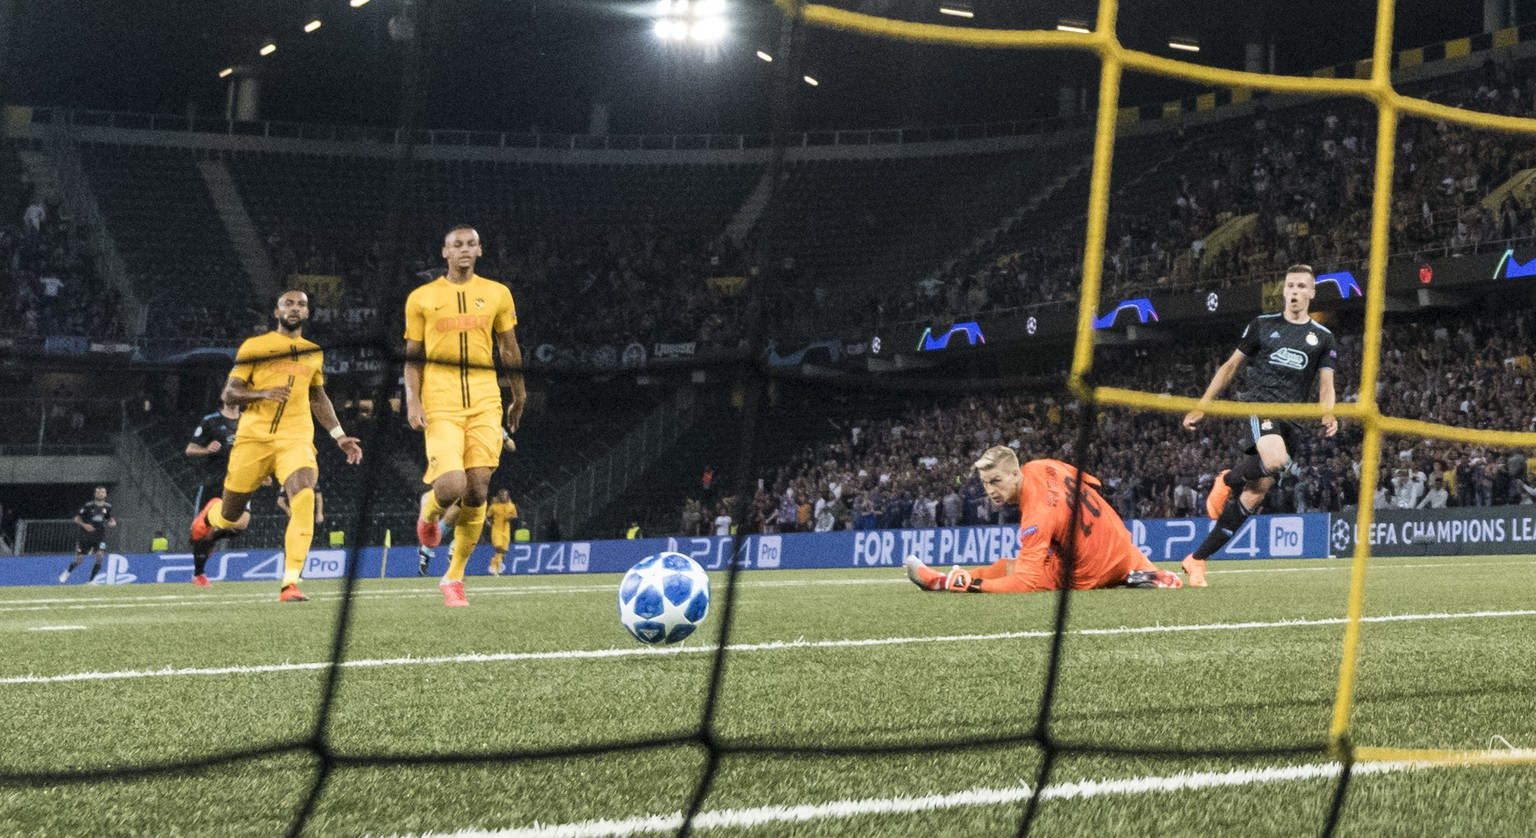 Zagreb's Mislav Orsic, right, scores to 1:1, against YB goalkeeper David Von Ballmoos, 2nd right, Gregory Wuethrich, left, and YB's Djibril Sow, during the UEFA Champions League football playoff match between Switzerland's BSC Young Boys and Croatia's GNK Dinamo Zagreb, in the Stade de Suisse Stadium in Bern, Switzerland, on Wednesday, August 22, 2018. (KEYSTONE/Alessandro della Valle)